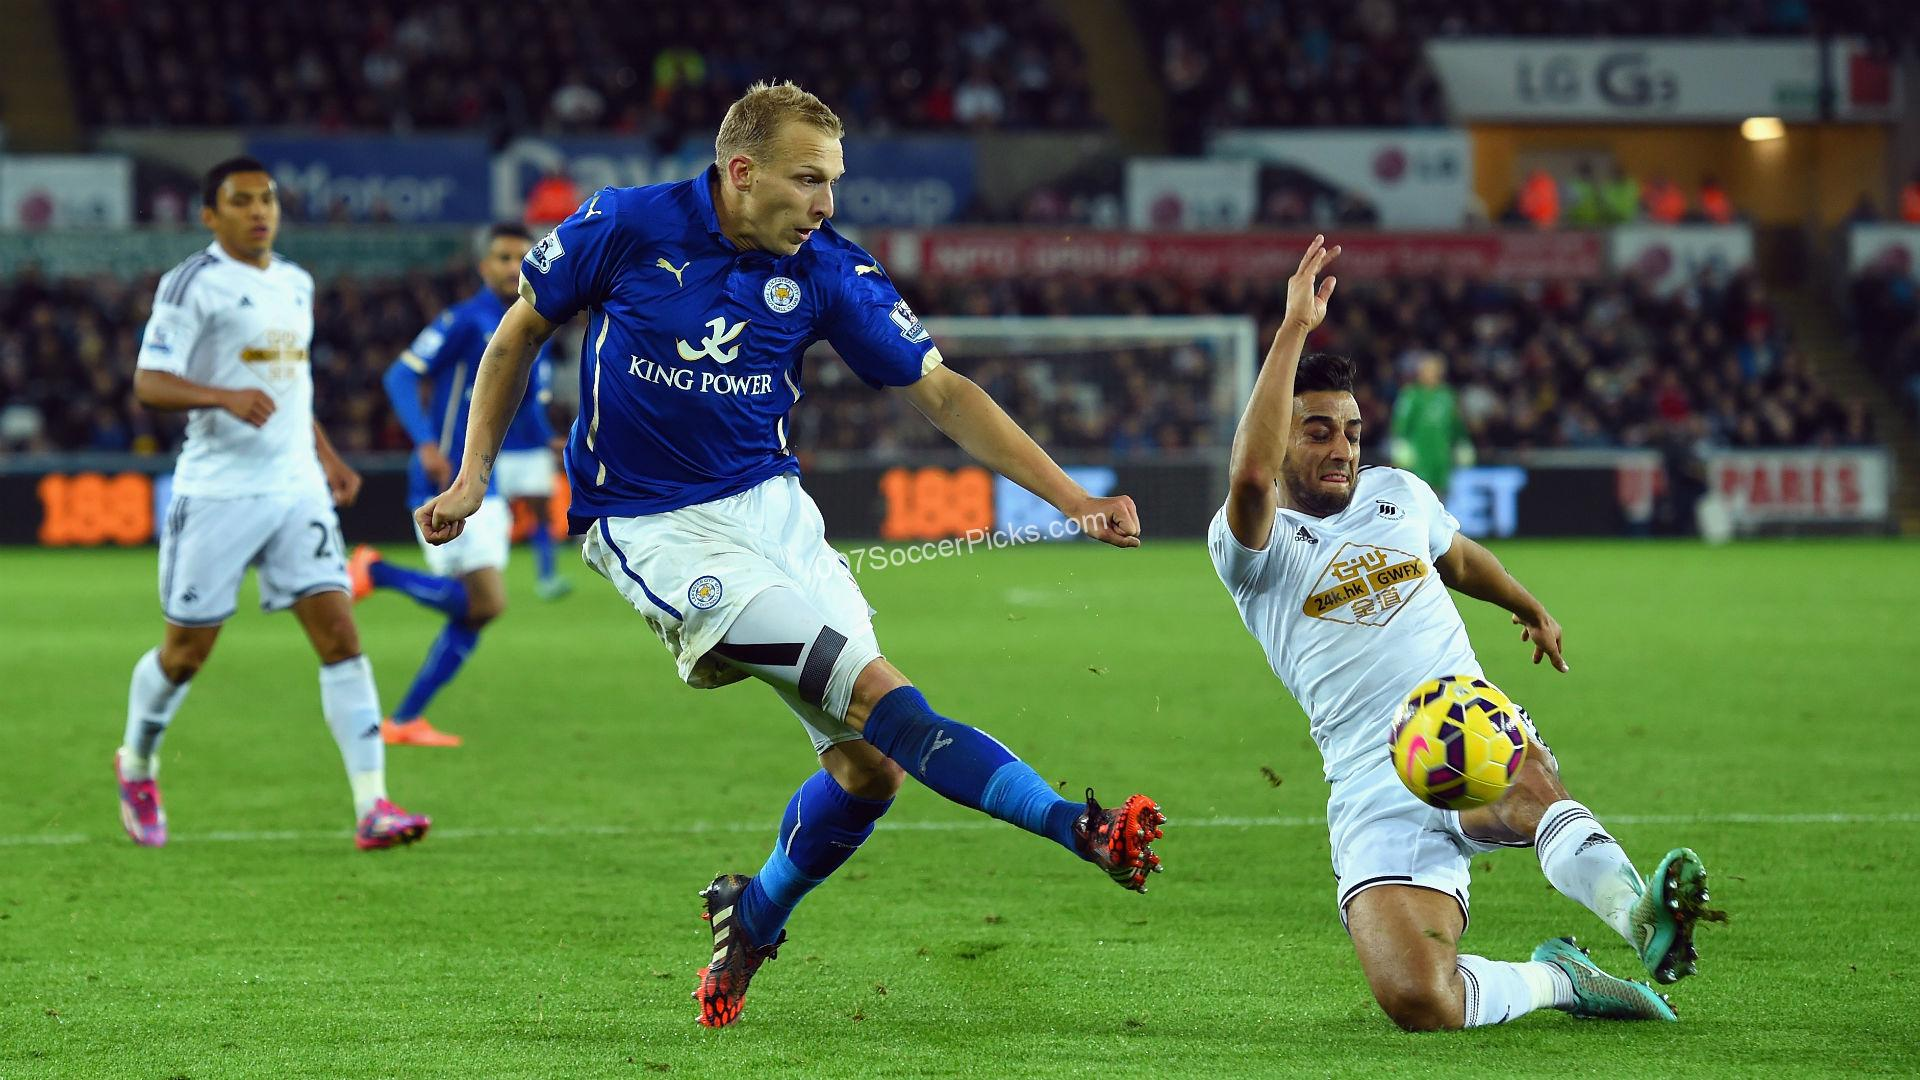 Swansea-Leicester